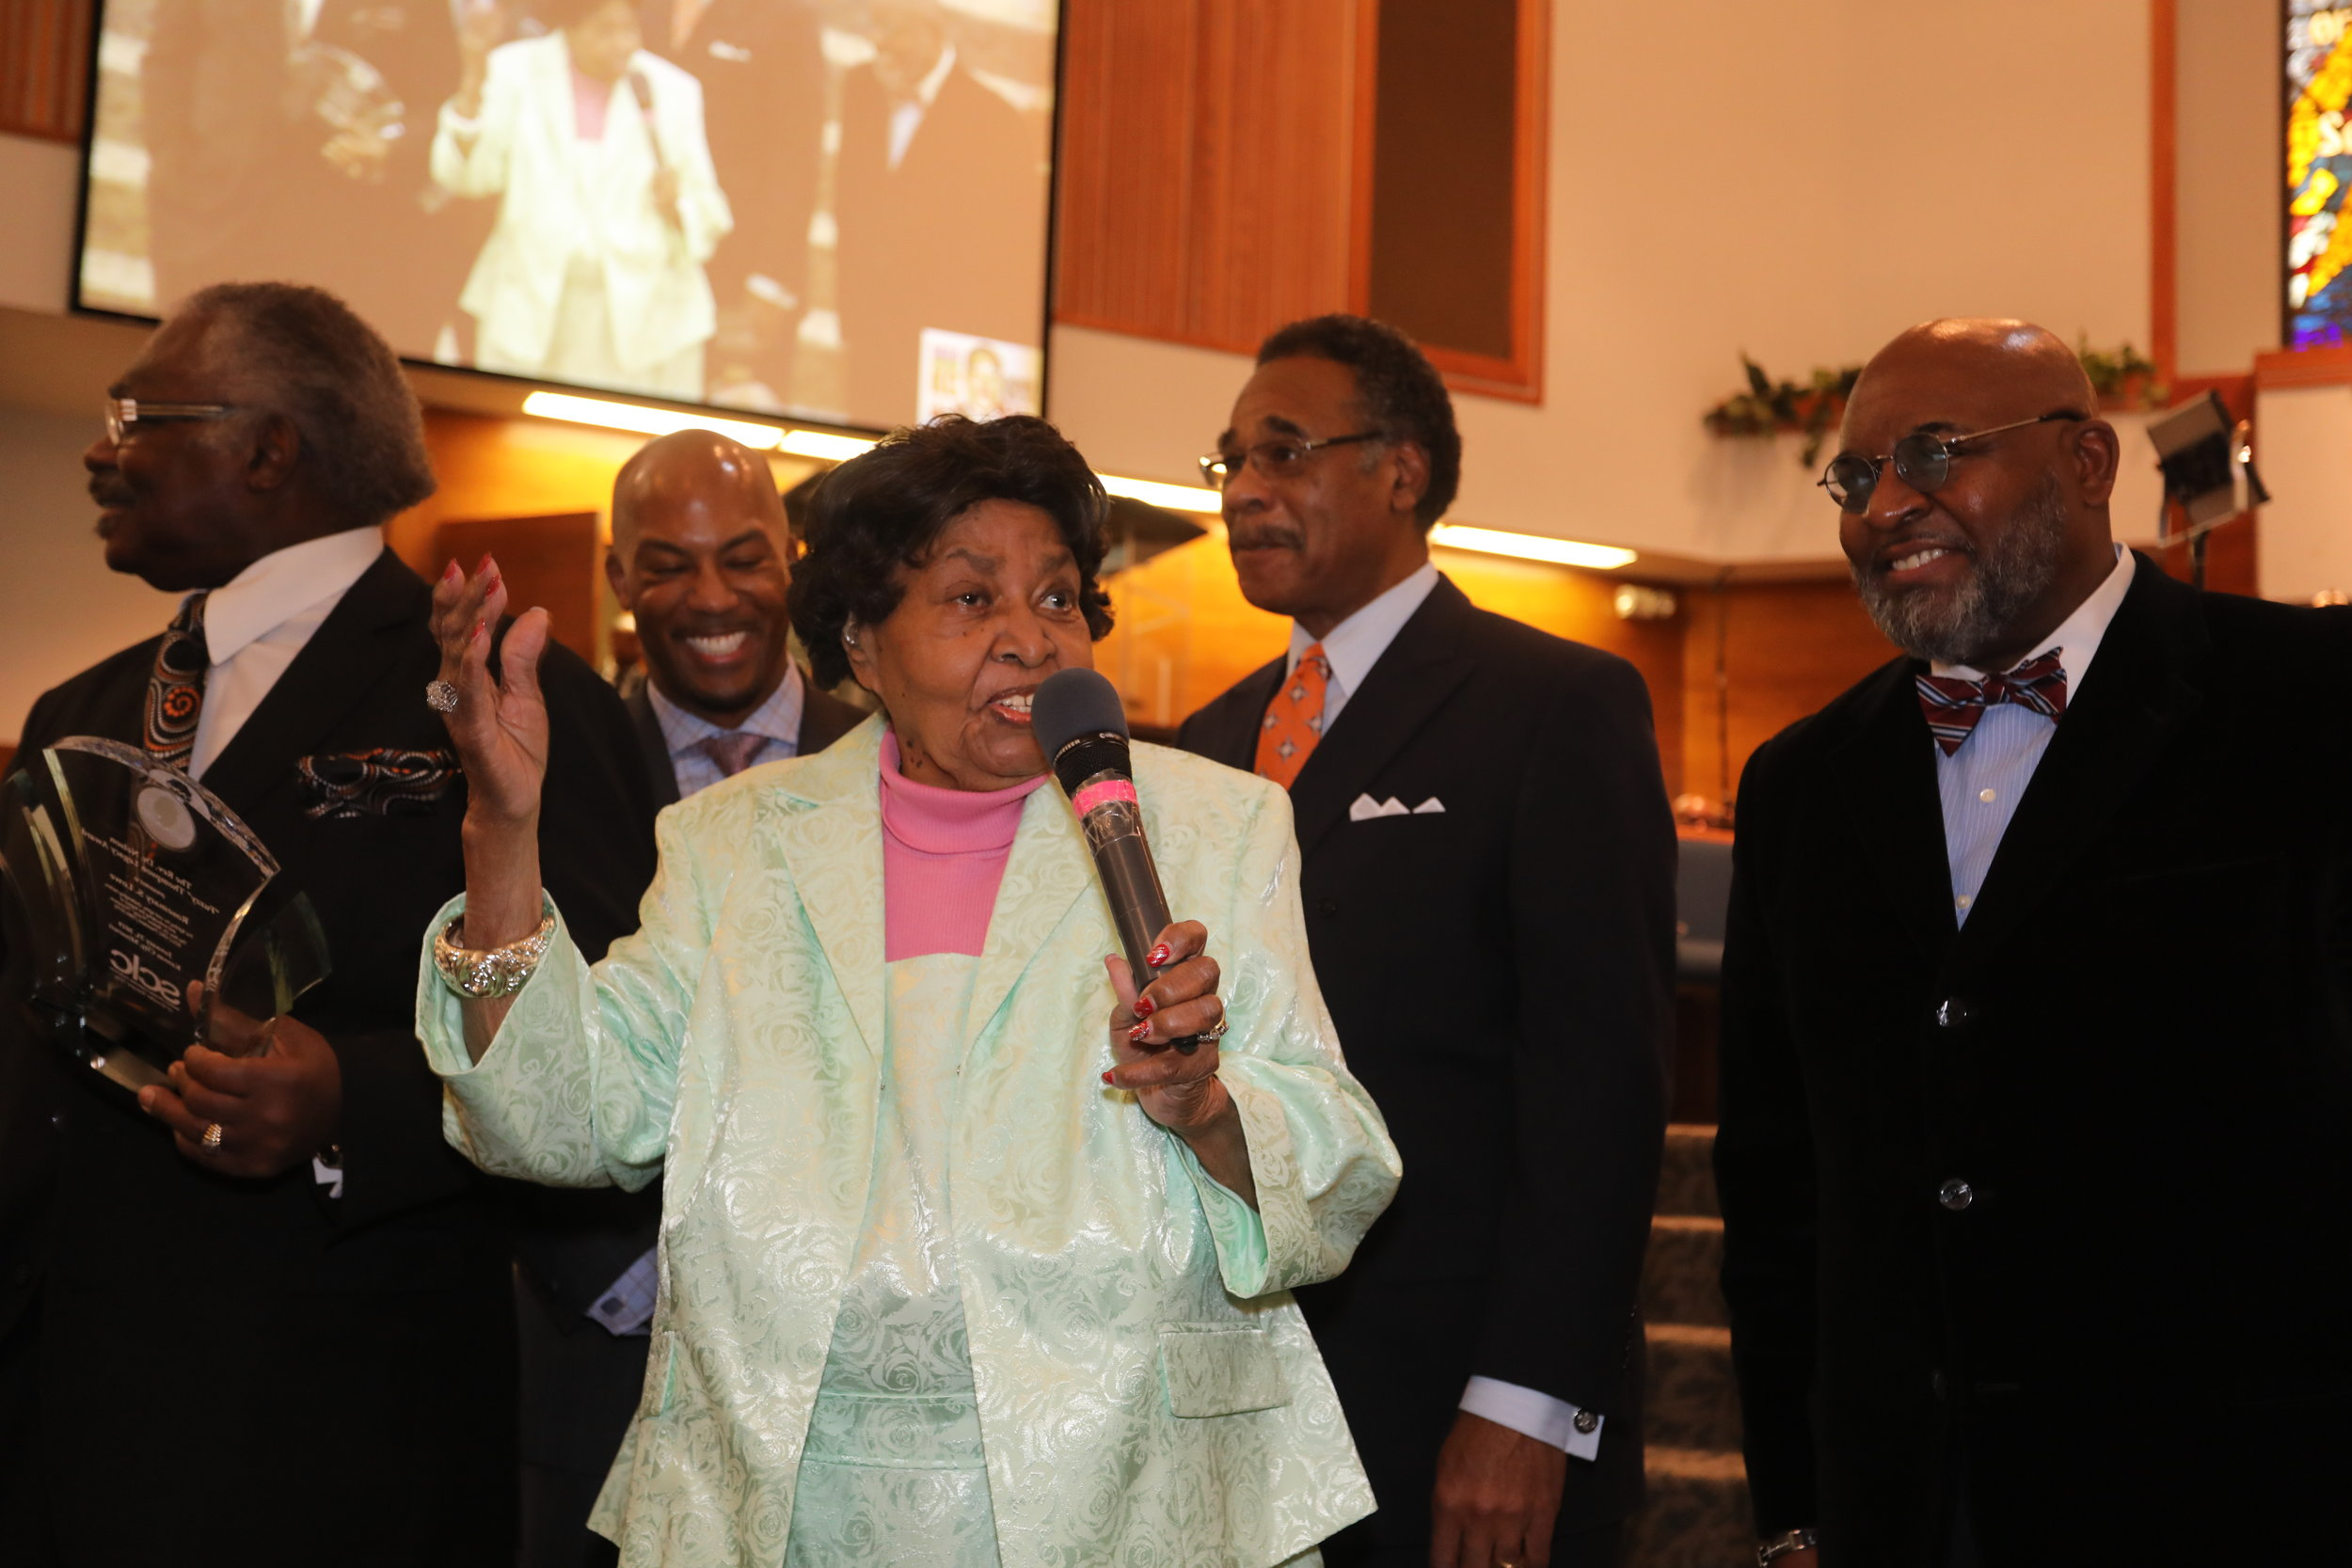 "Rev. Dr. Nelson ""Fuzzy""Thompson"" Legacy Award honoree Rosemary Lowe and (from left) presenter Rev. John M. Miles (Morning Star Missionary Baptist Church), SLCL Chairman Wesley Fields, U.S. Rep. Emanuel Cleaver II, and SCLC President Dr. Vernon Percy Howard Jr."